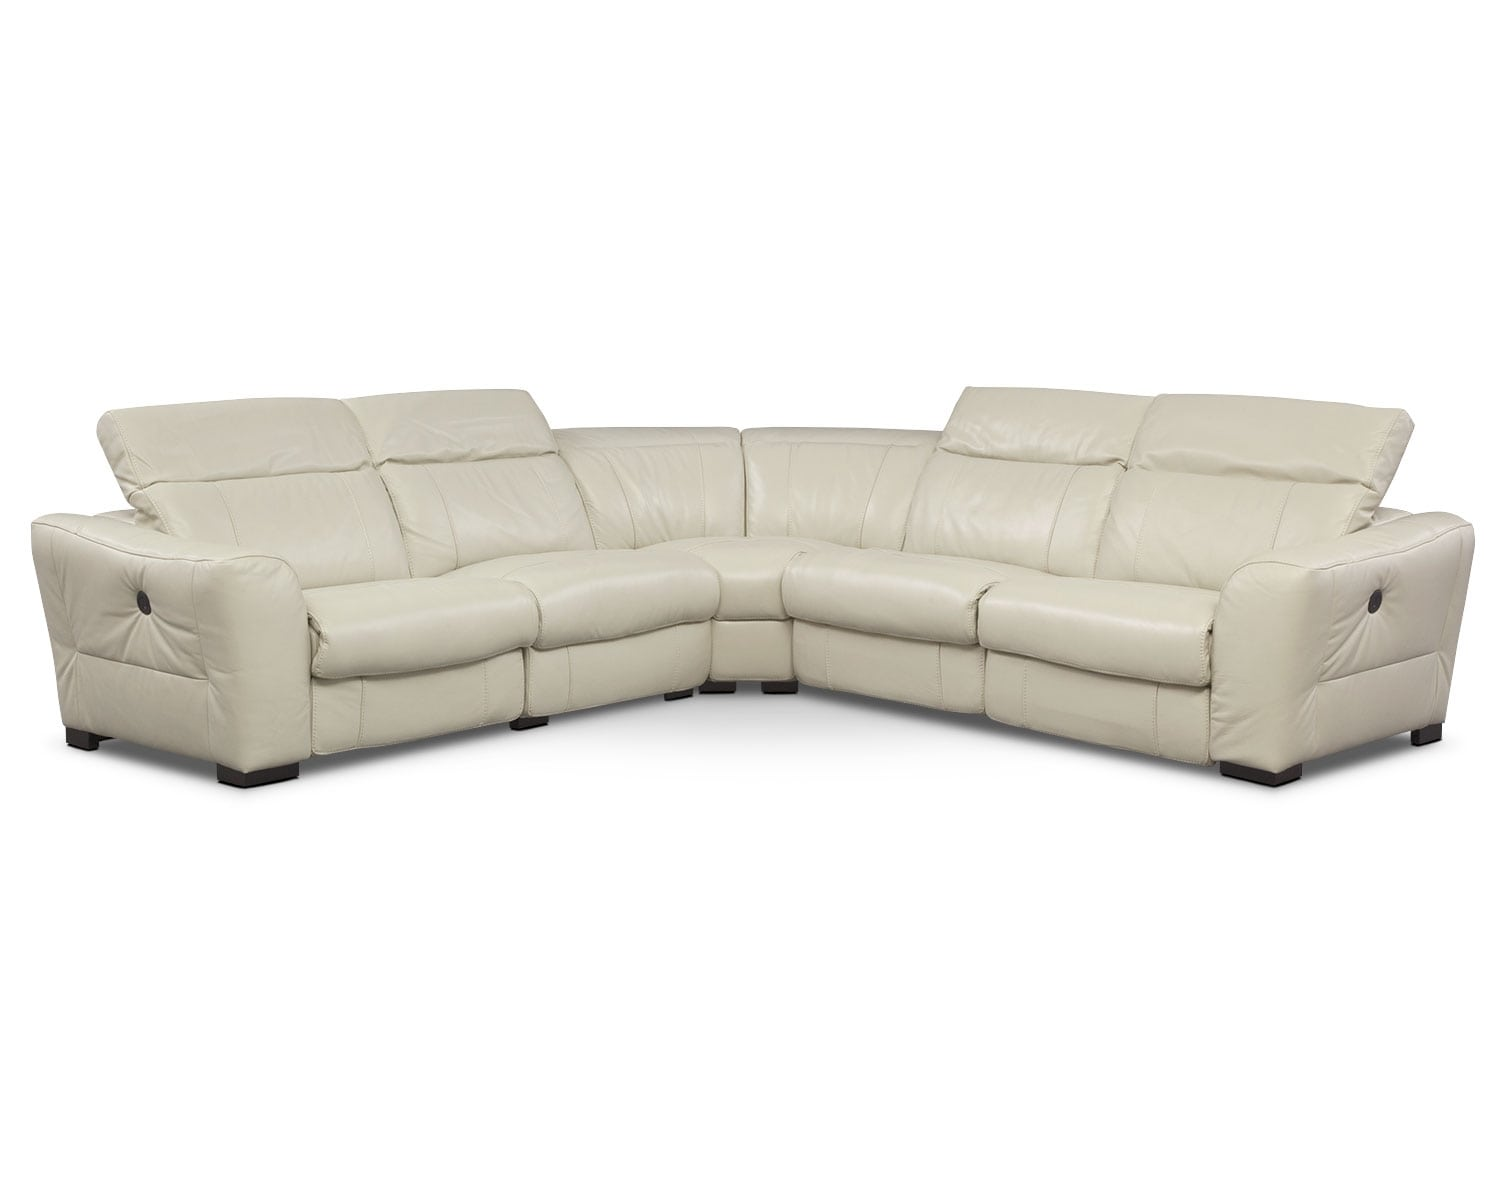 The Palisade Ivory Sectional Collection